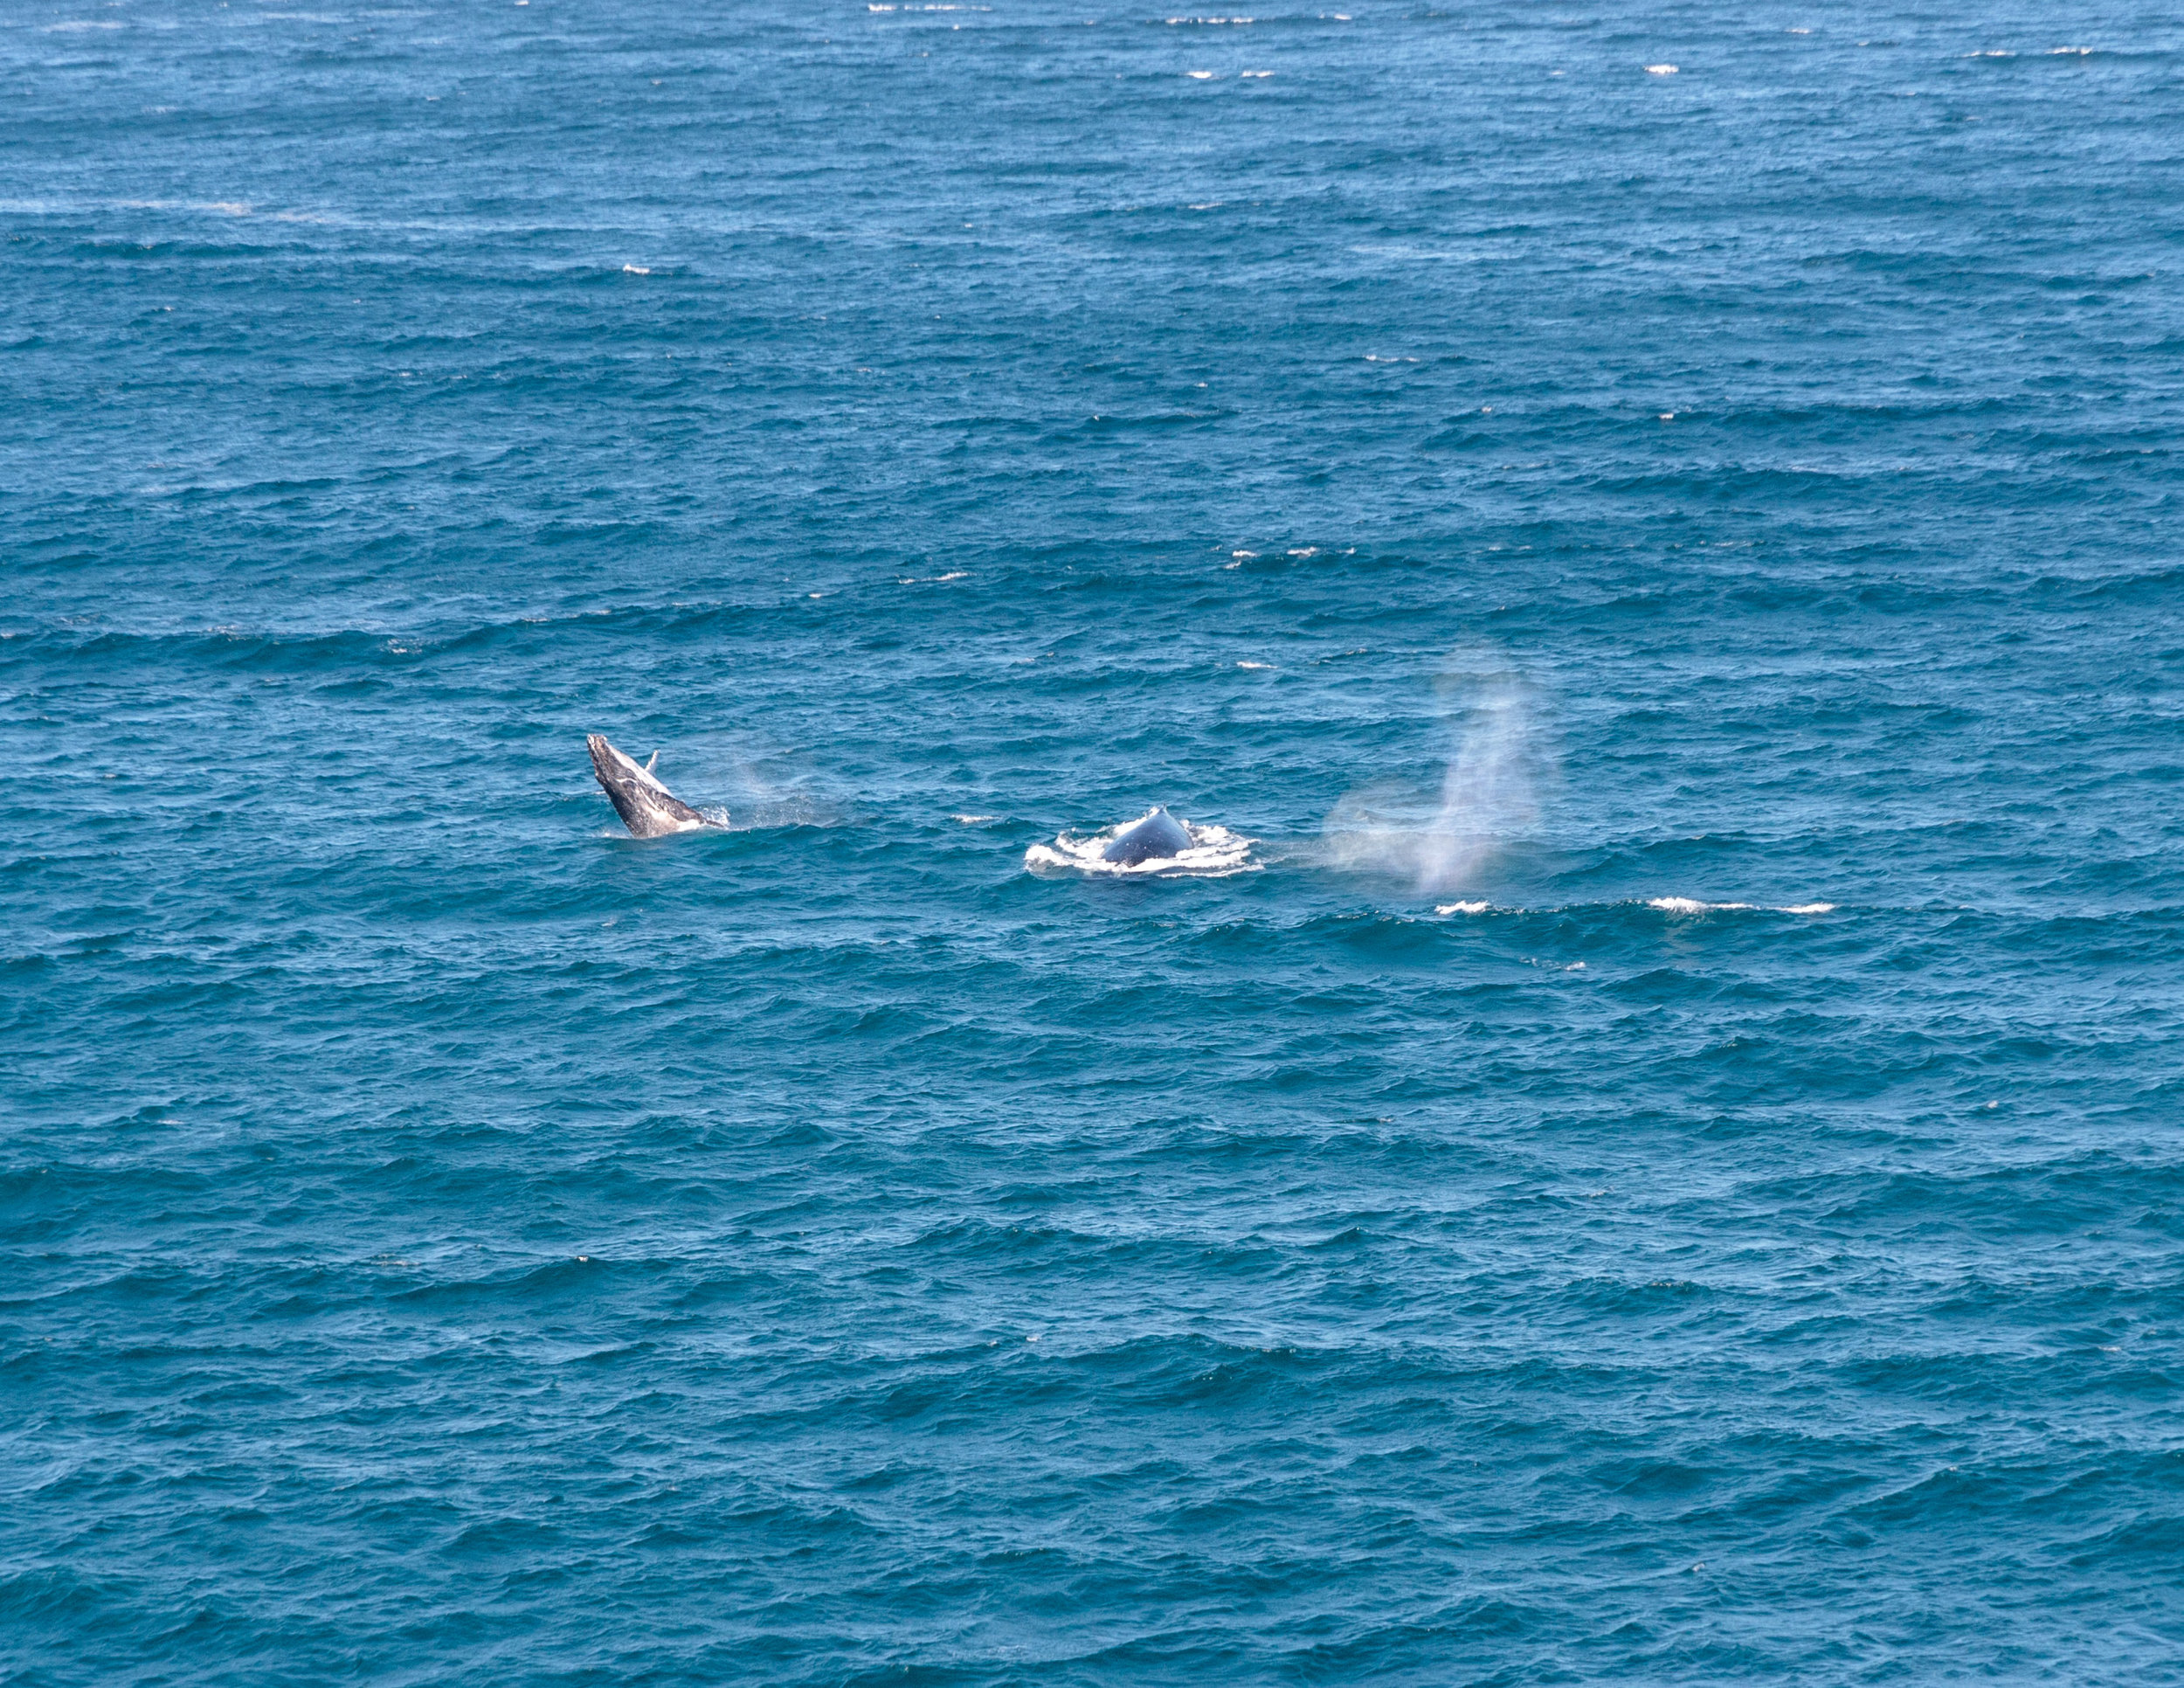 What to do with 48 hours in Sydney: Whale watch from the cliffs at Bondi